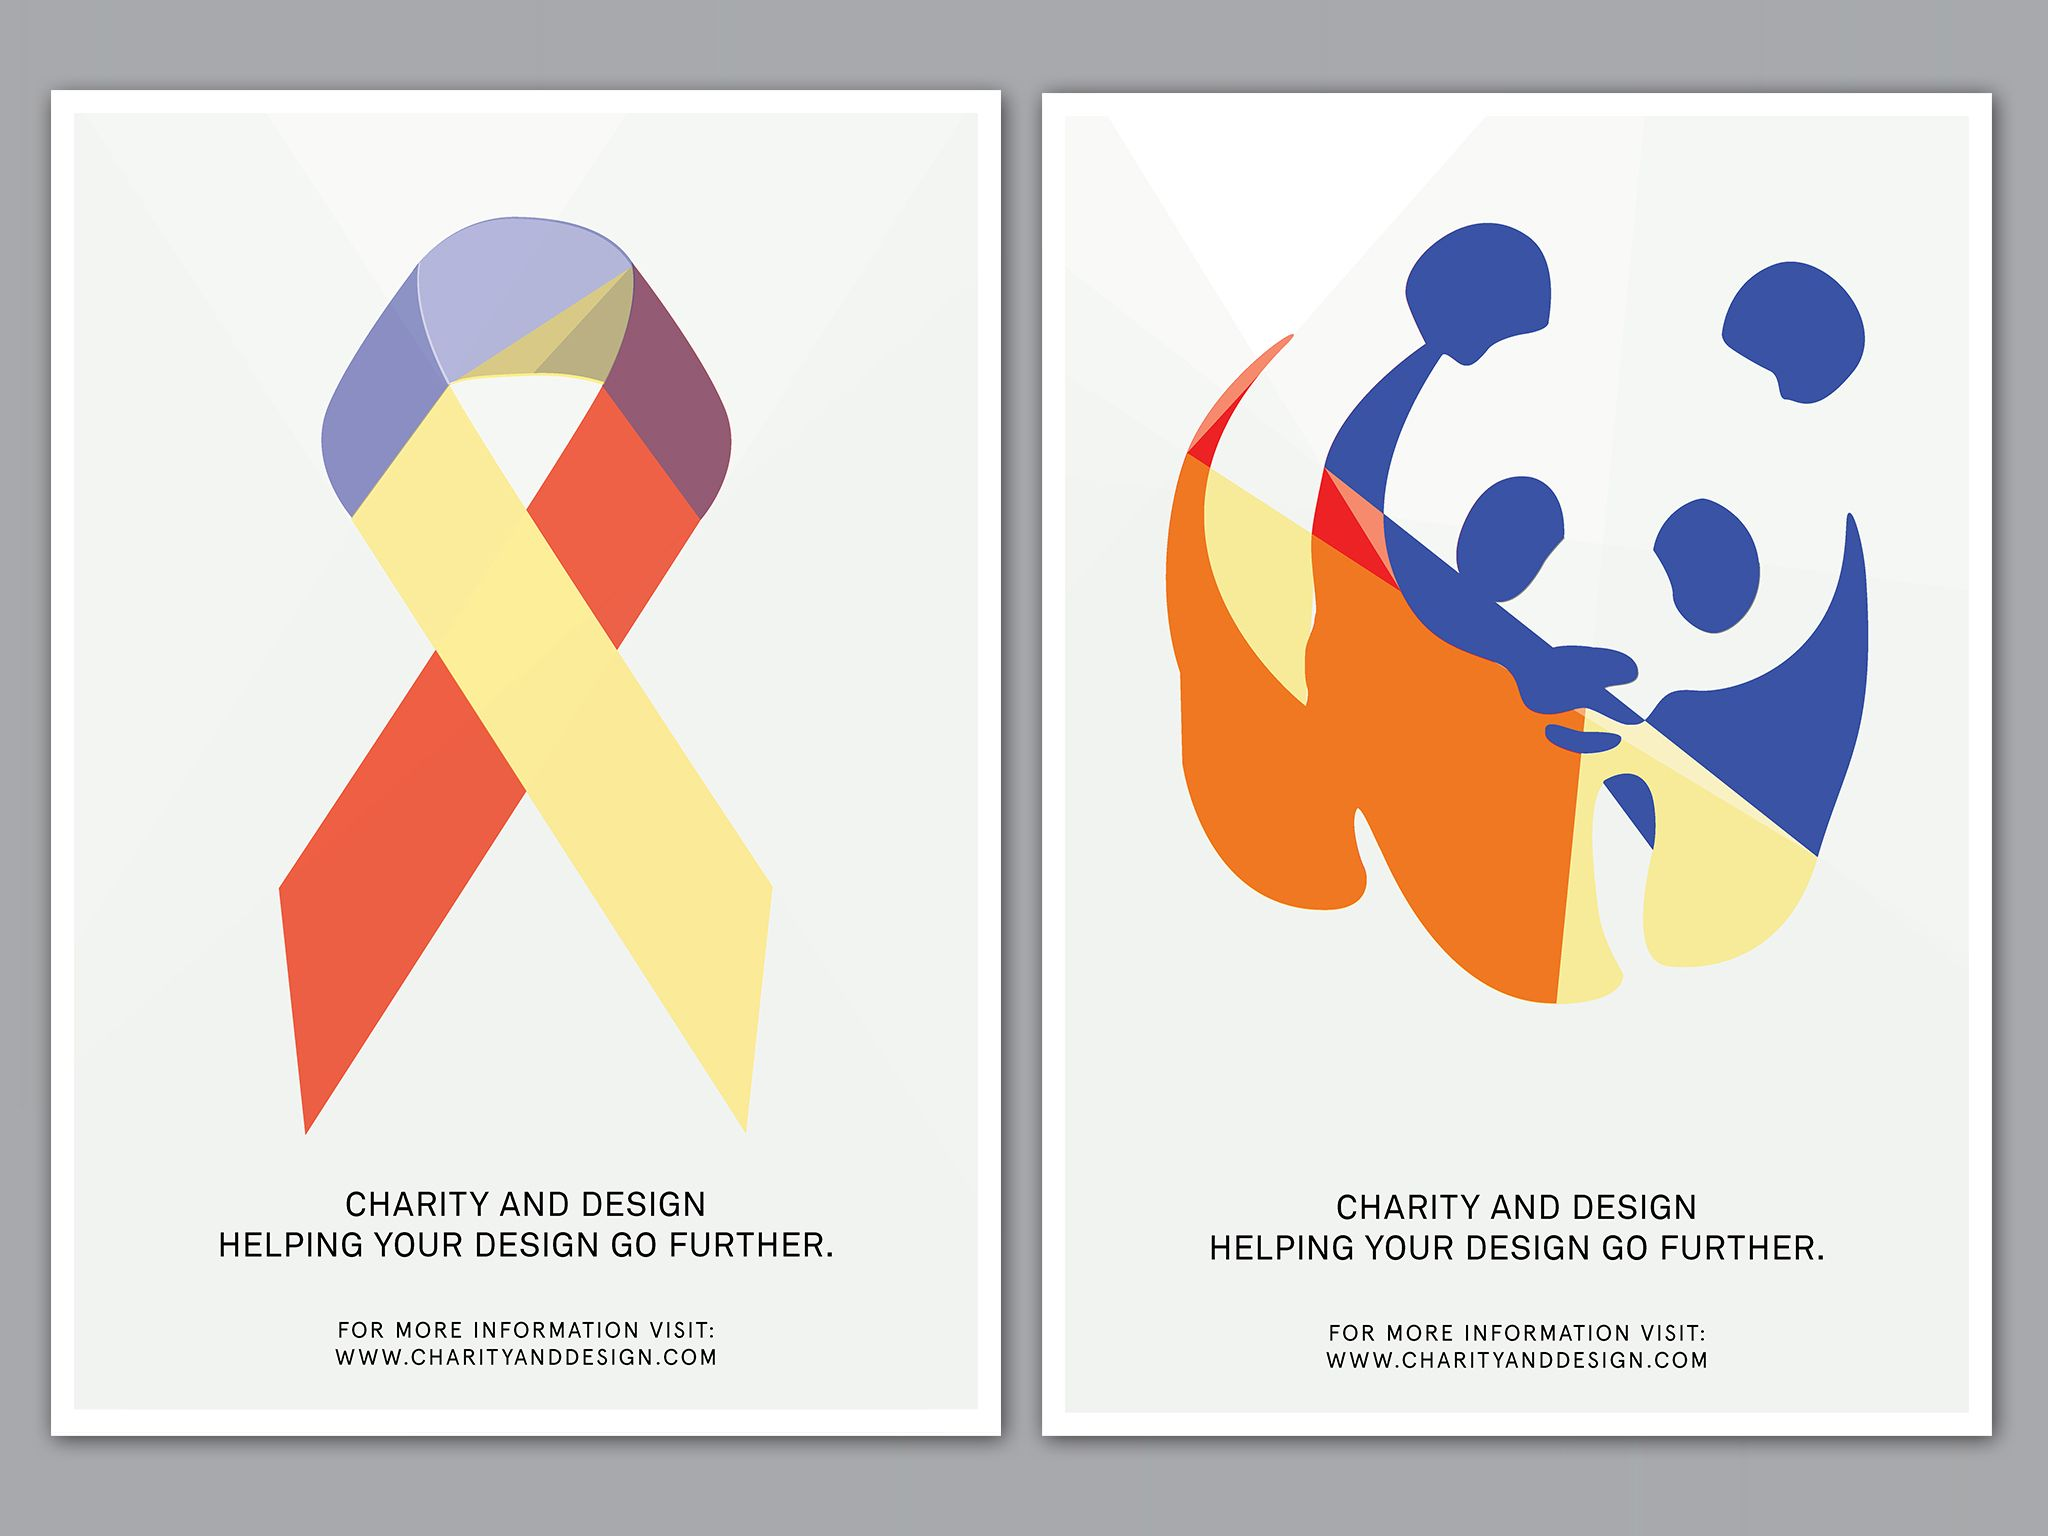 Poster design trends - Typographic Charity Poster Google Search Charity Posterdesign Trends